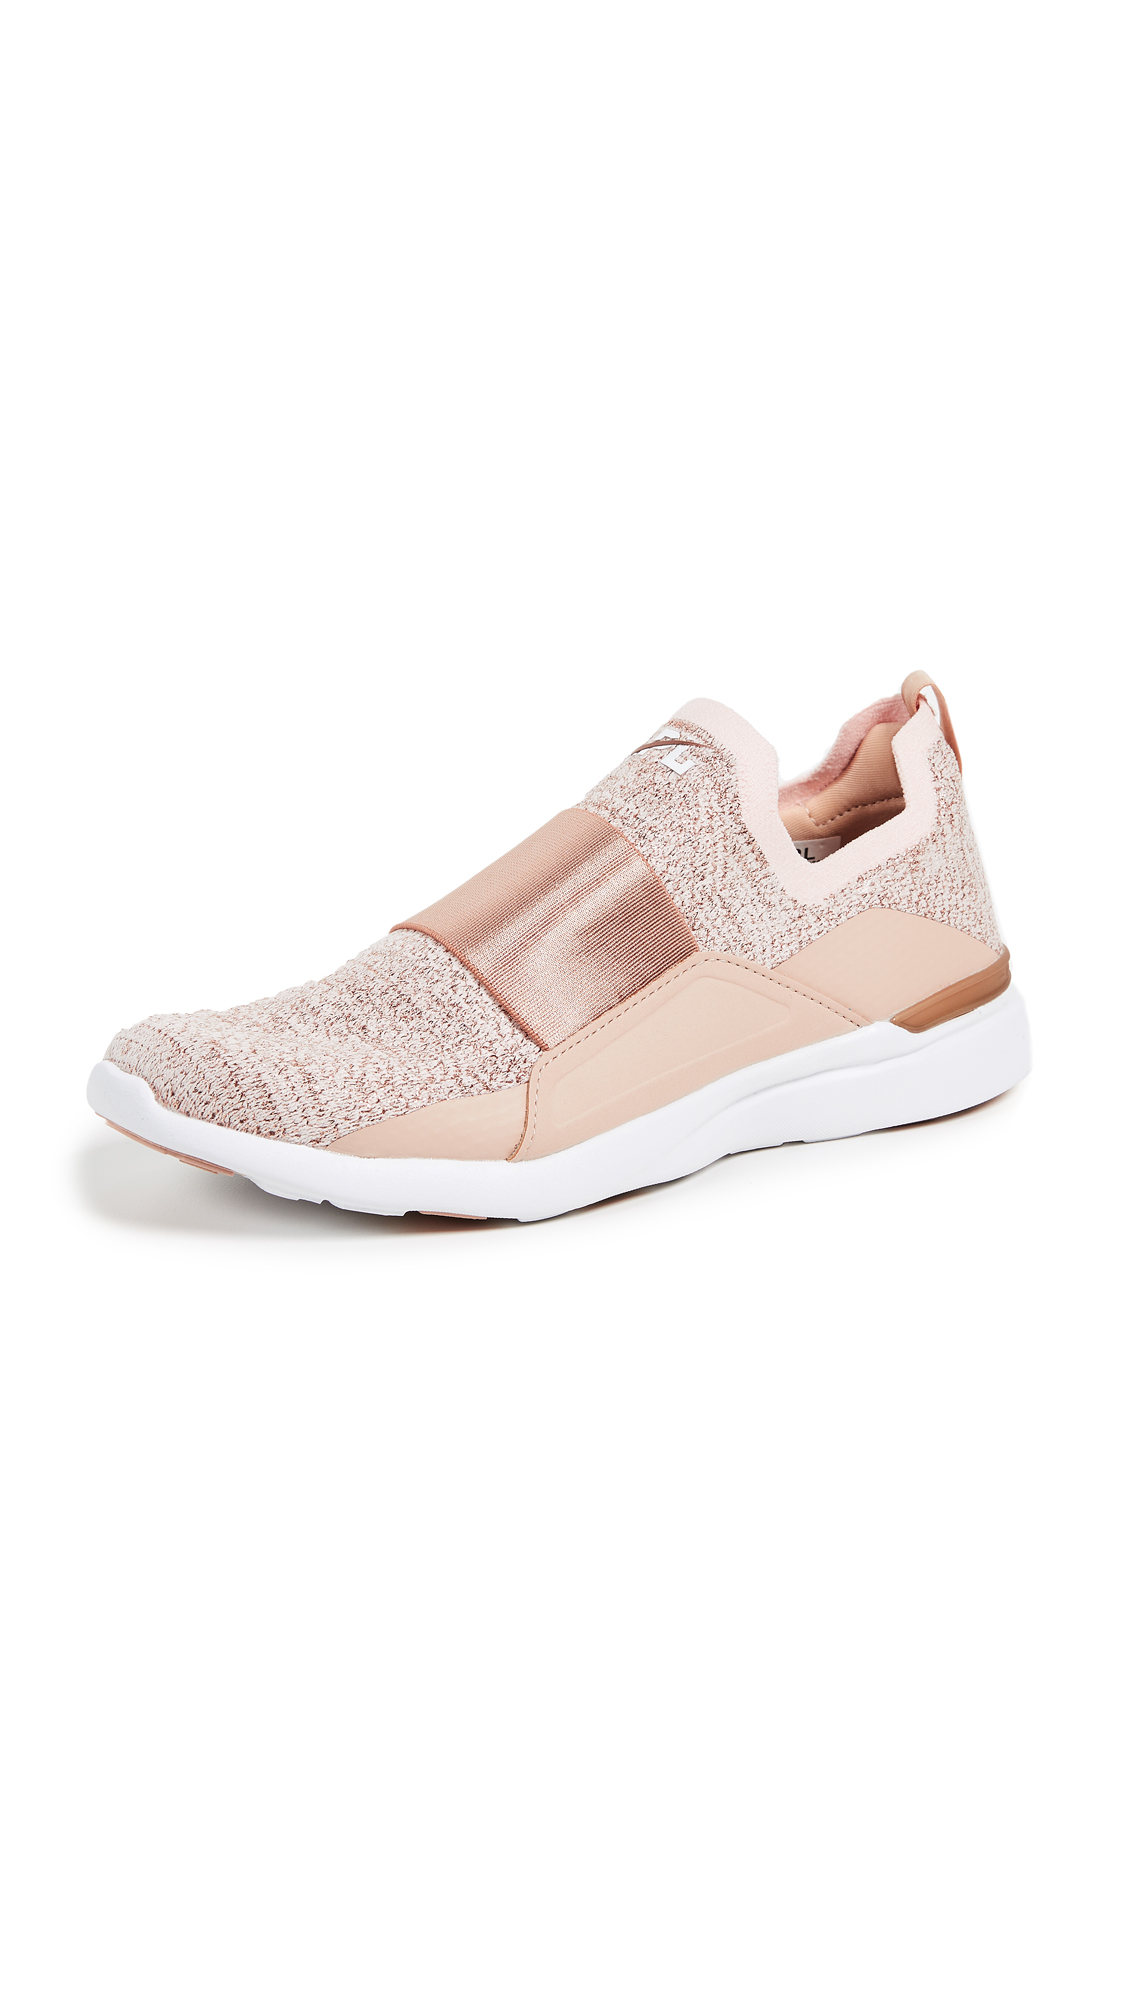 APL: Athletic Propulsion Labs TechLoom Bliss Sneakers - Rose Gold/White